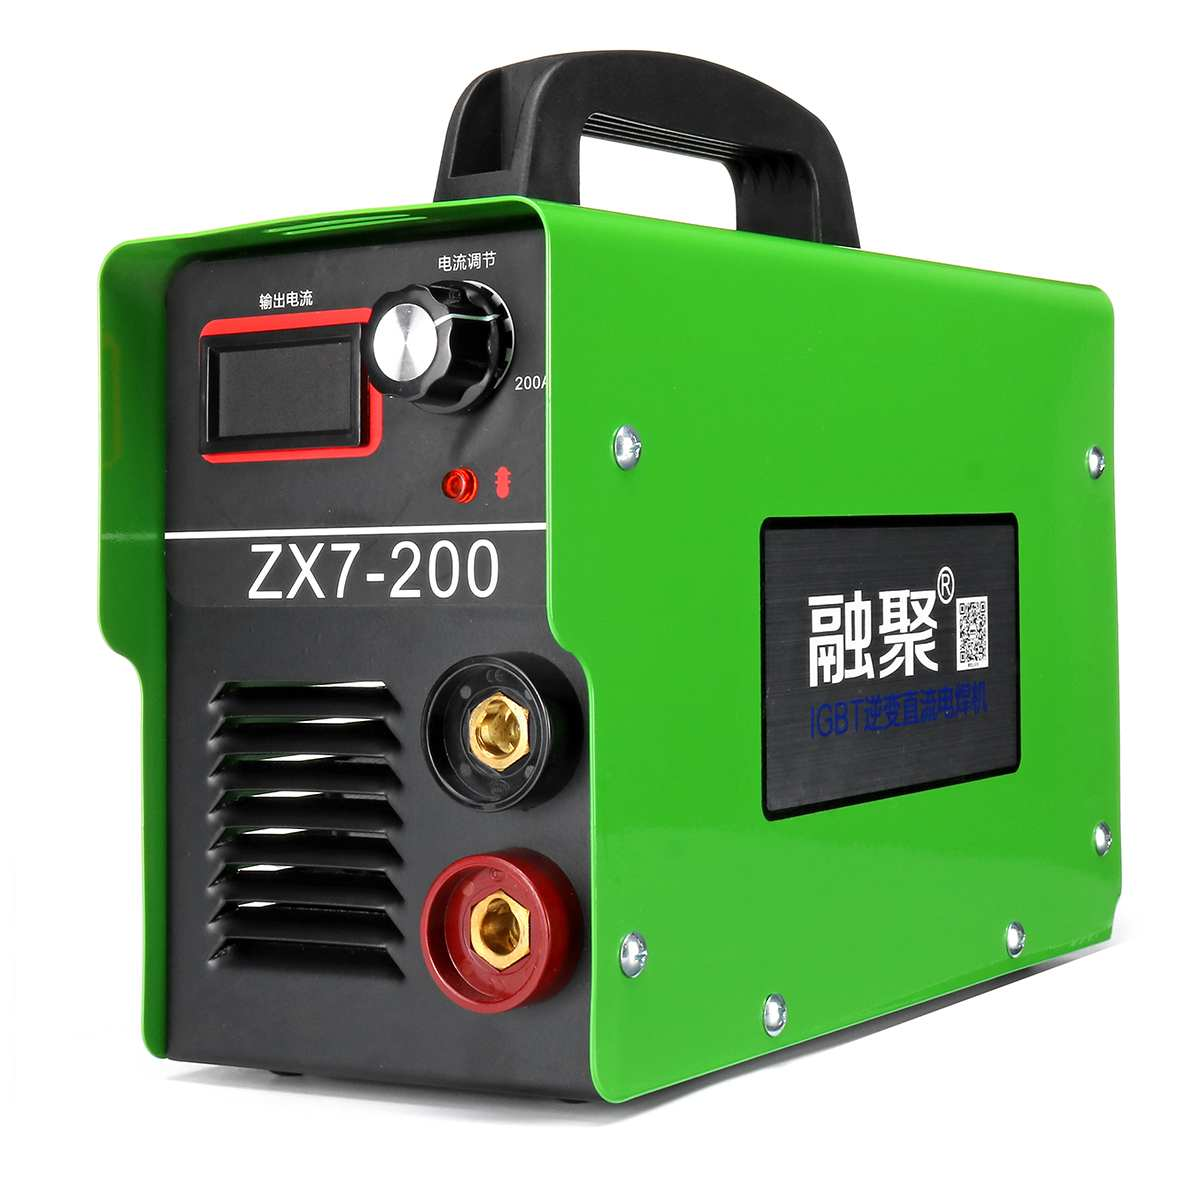 220V 20A-200A 4000W Handheld Portable MINI IGBT ARC Welding Machine Semi-Automatic Inverter LCD Soldering Welder Tool